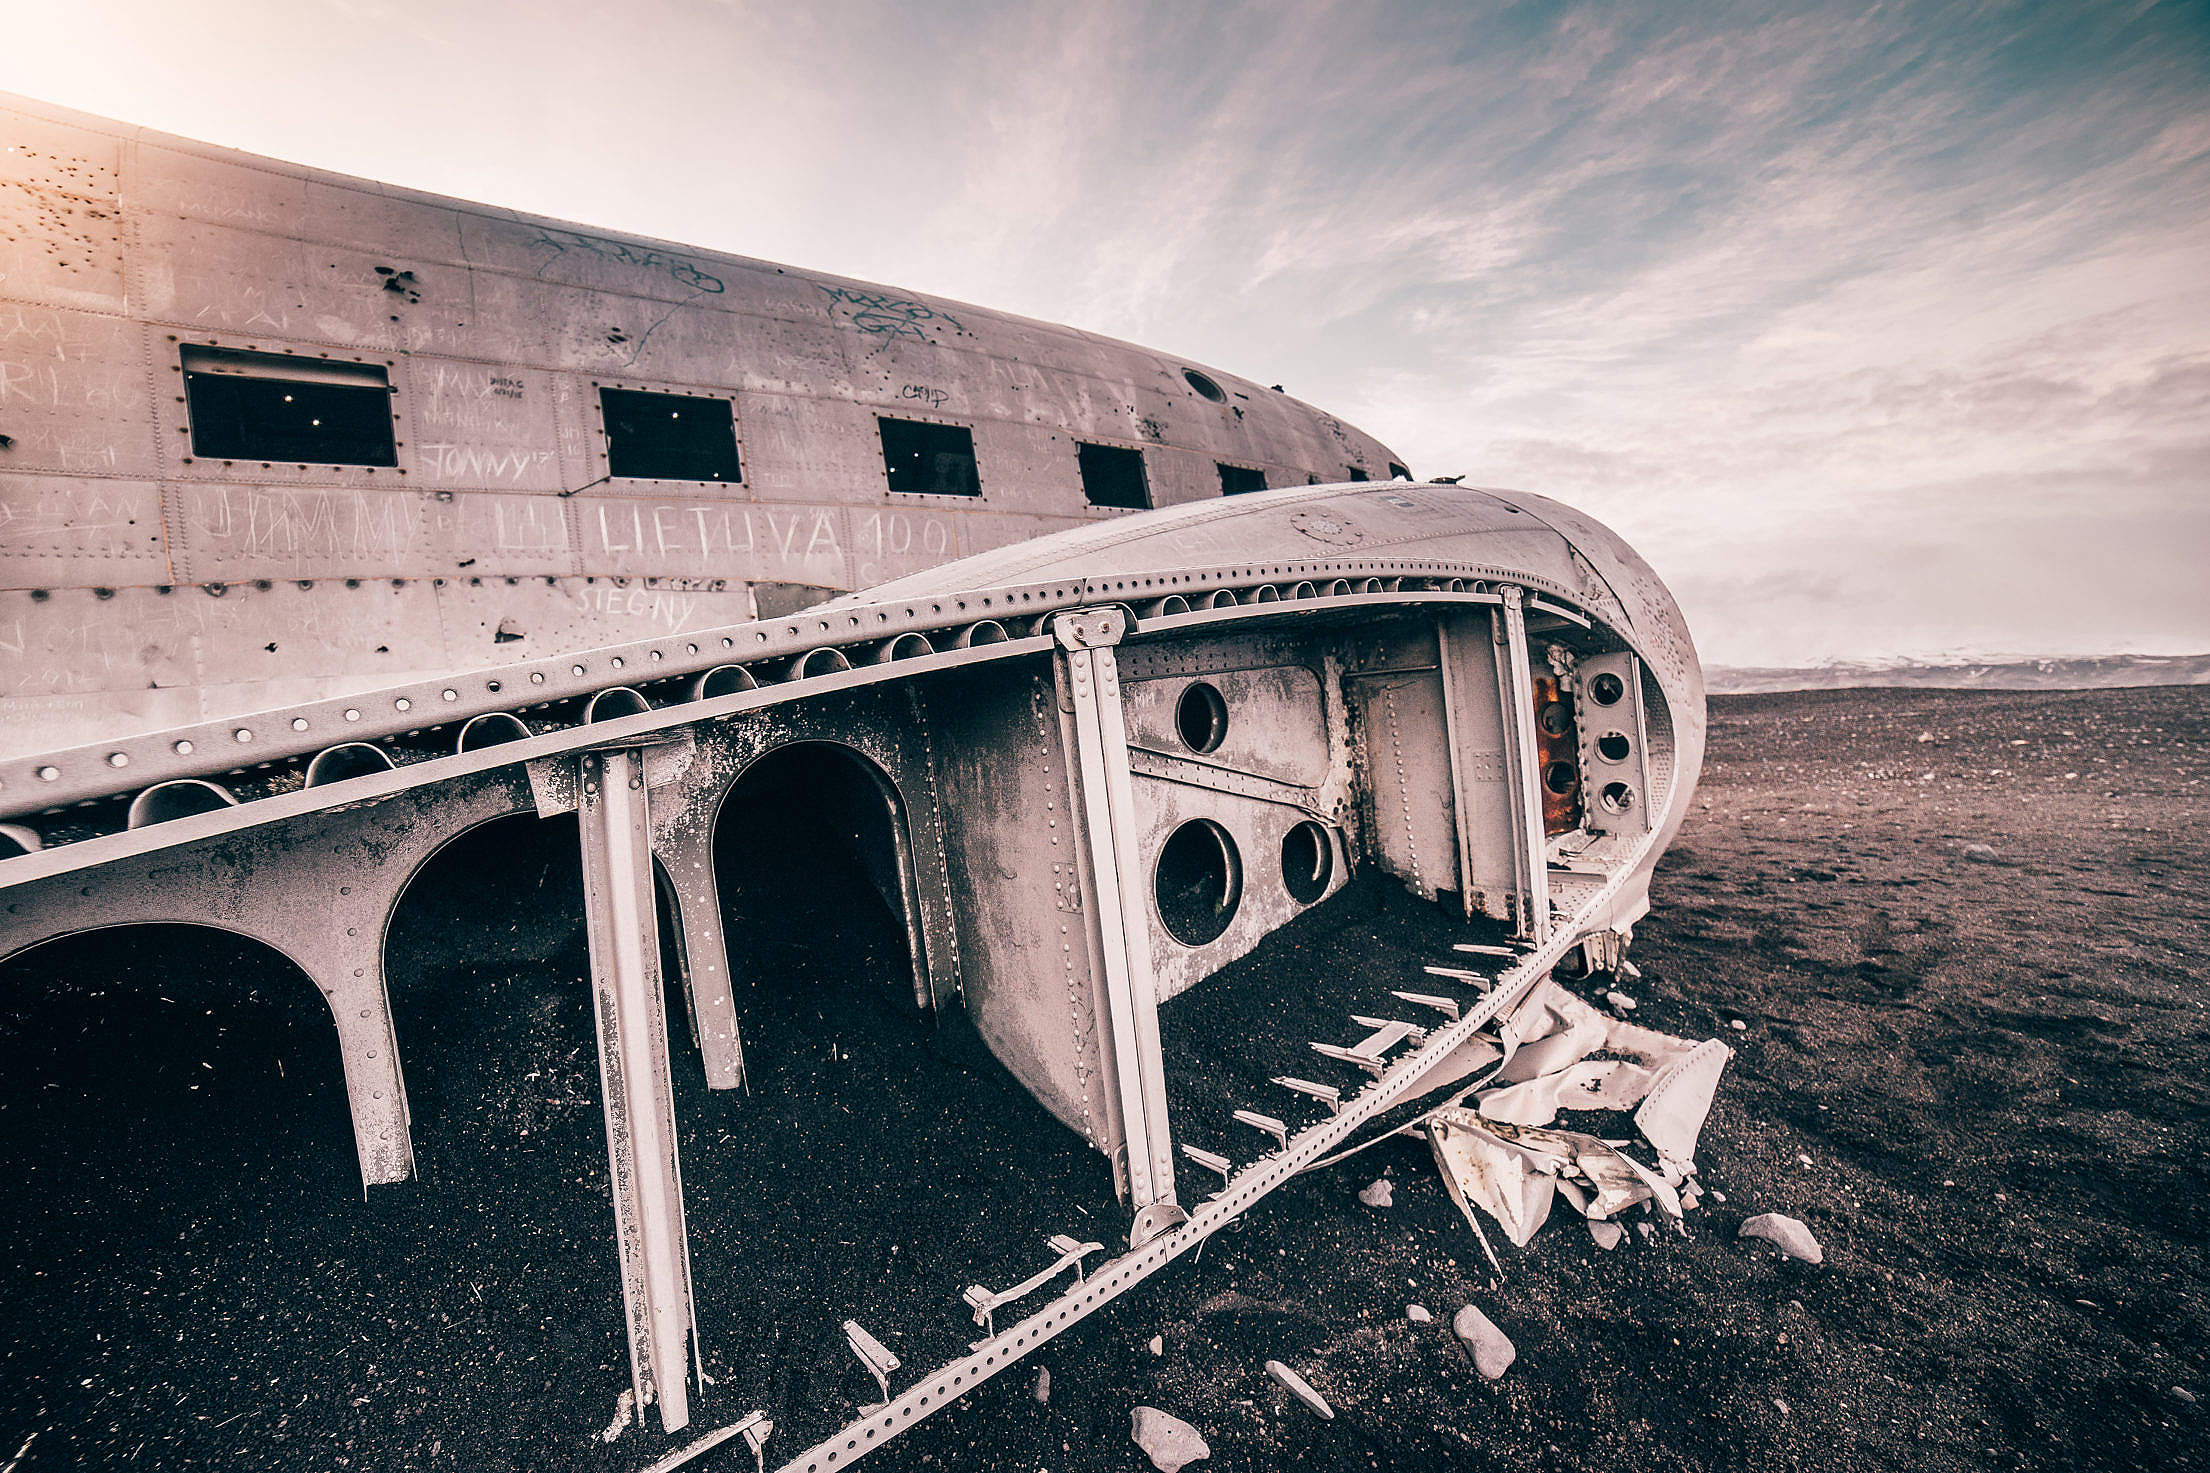 Plane Wreckage in Iceland Free Stock Photo